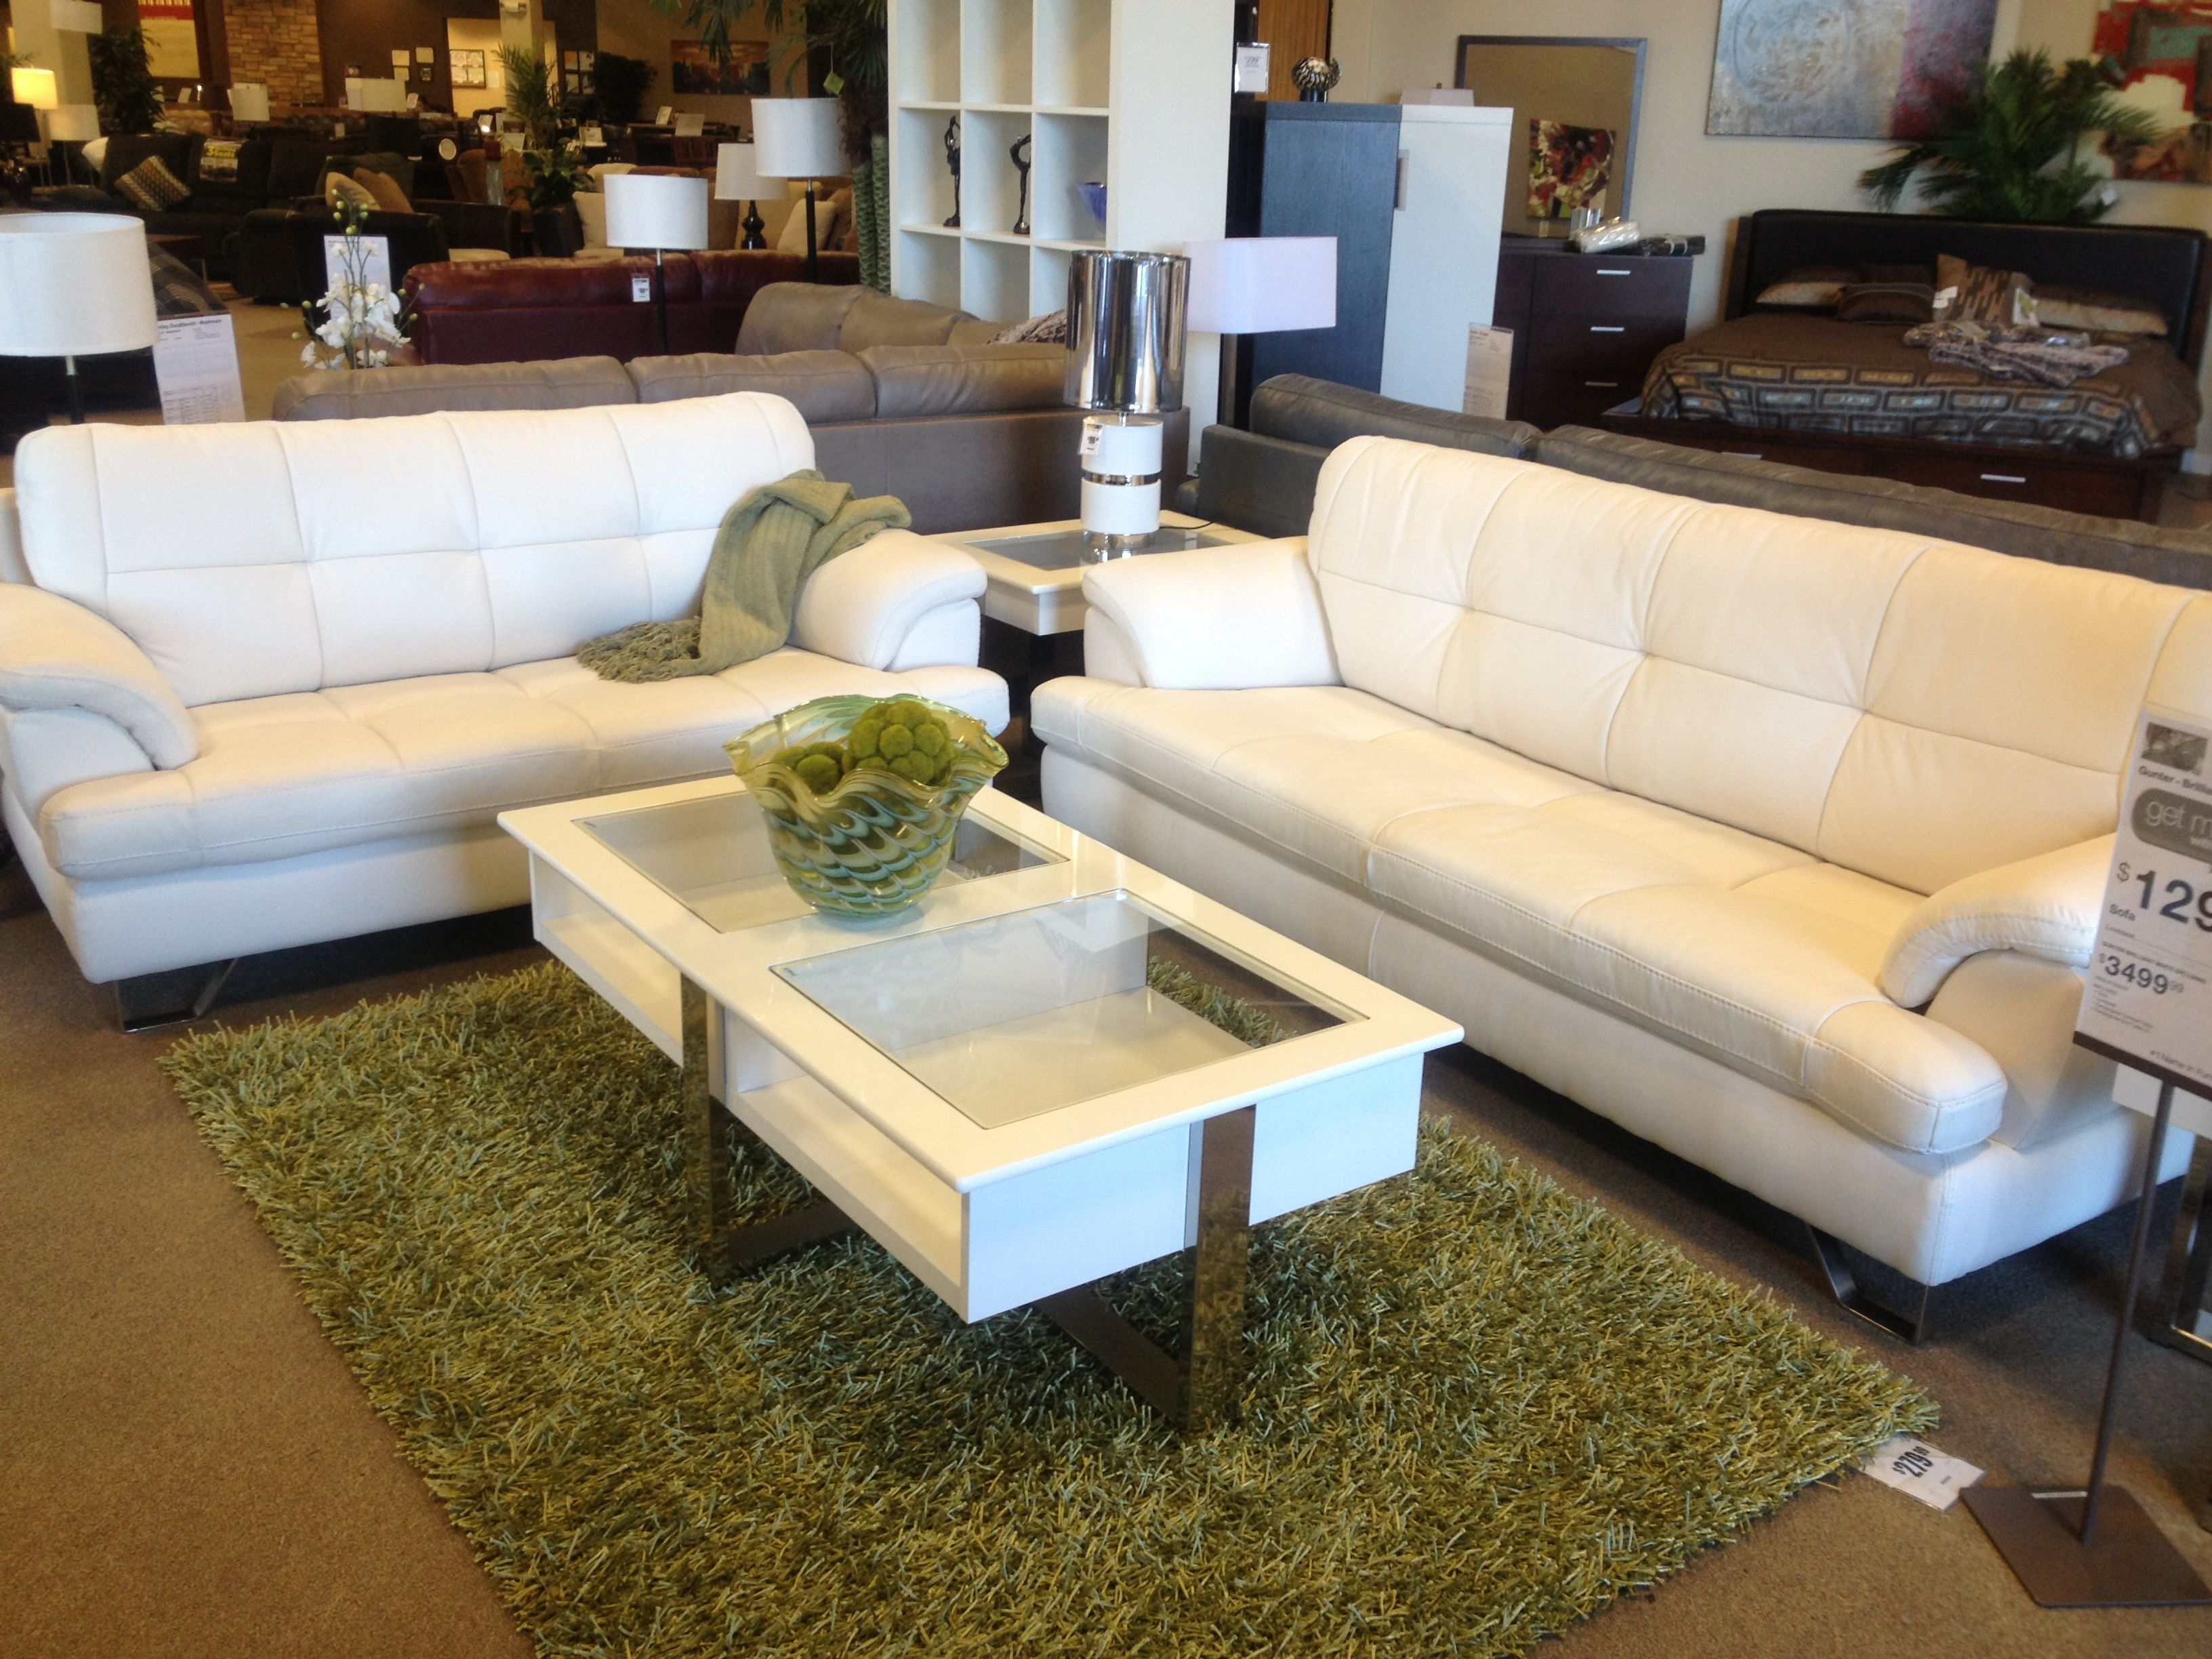 Superb White Leather Couch White Coffee Table Love Leather Pdpeps Interior Chair Design Pdpepsorg